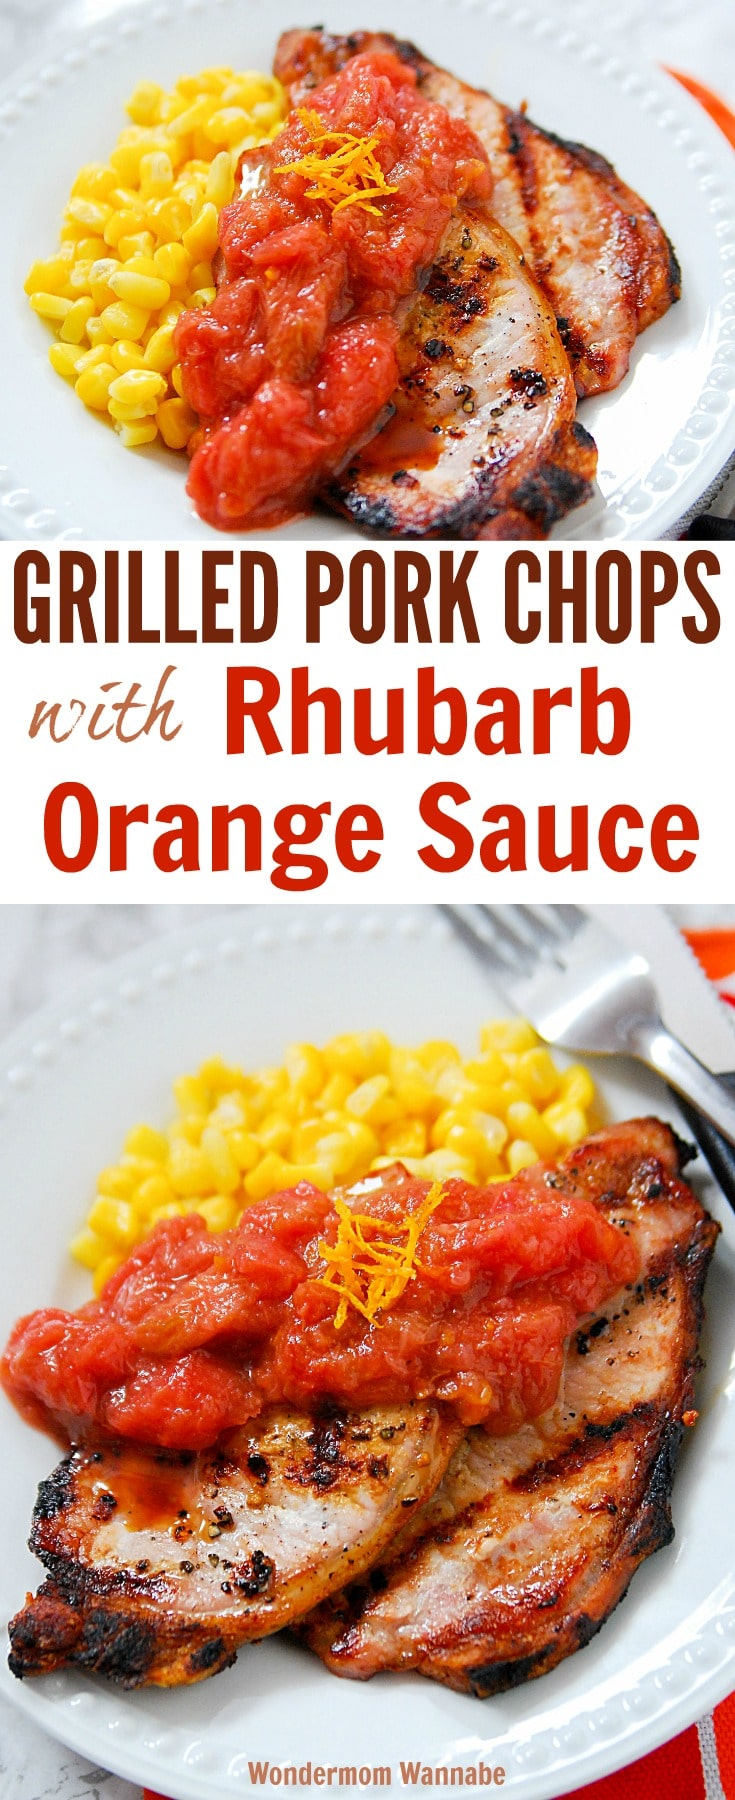 a collage of pork chops topped with rhubarb orange sauce and corn on a white plate with title text reading Grilled Pork Chops with Rhubarb Orange Sauce